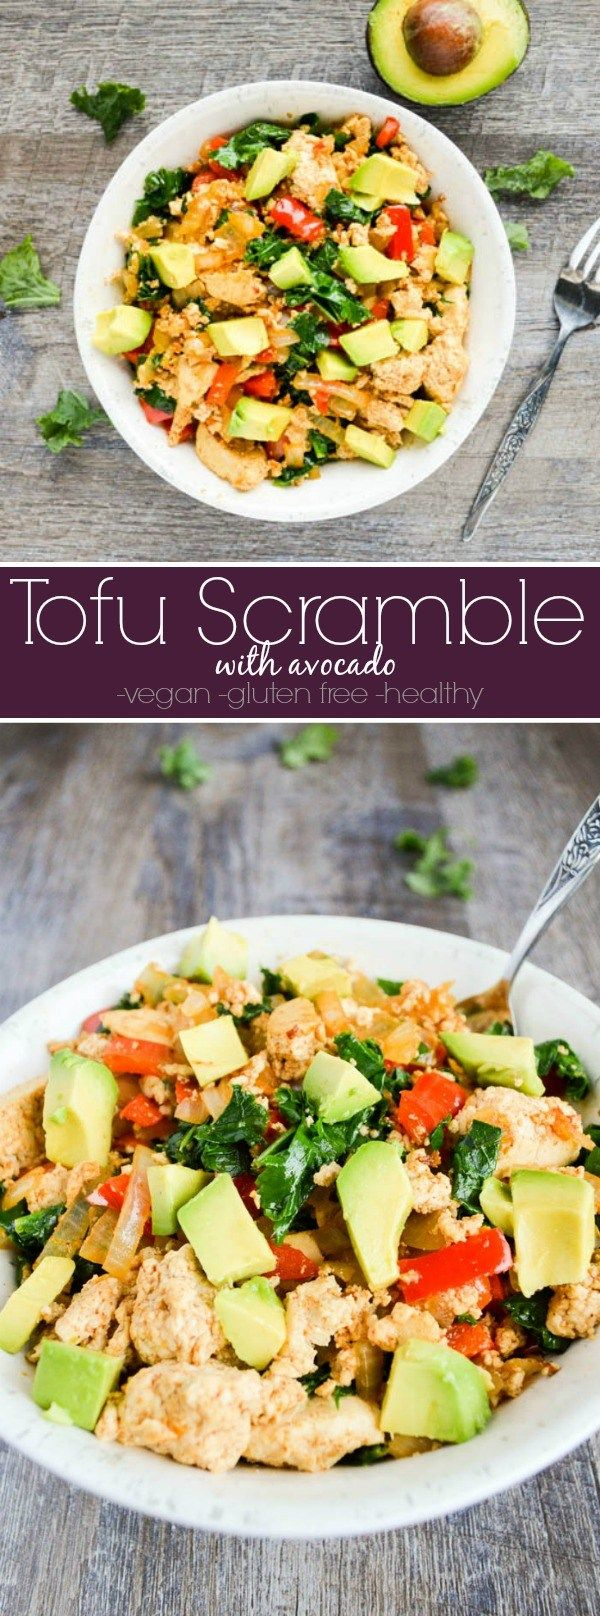 Tofu Scramble recipe - plant based, vegan breakfast that is a great egg replacement!